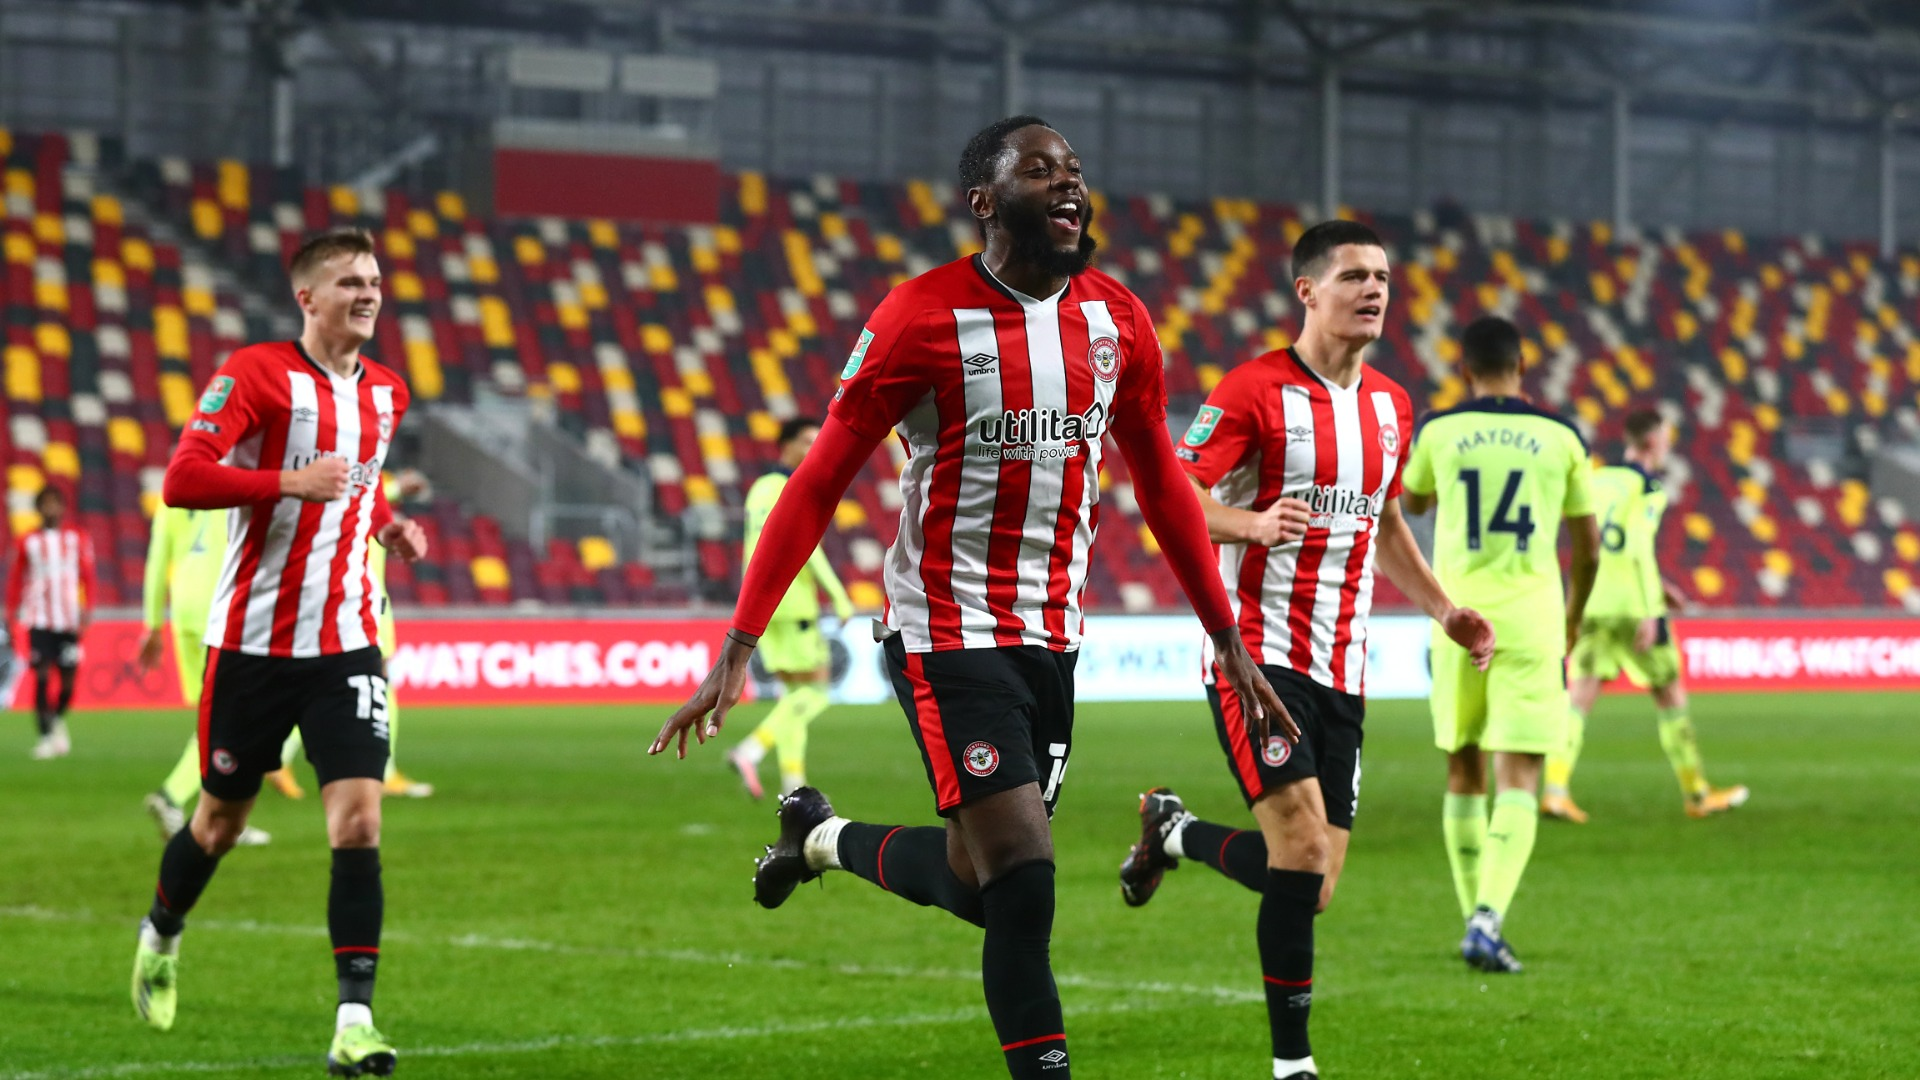 Brentford 1-0 Newcastle United: Bees continue to break new ground with another EFL Cup upset